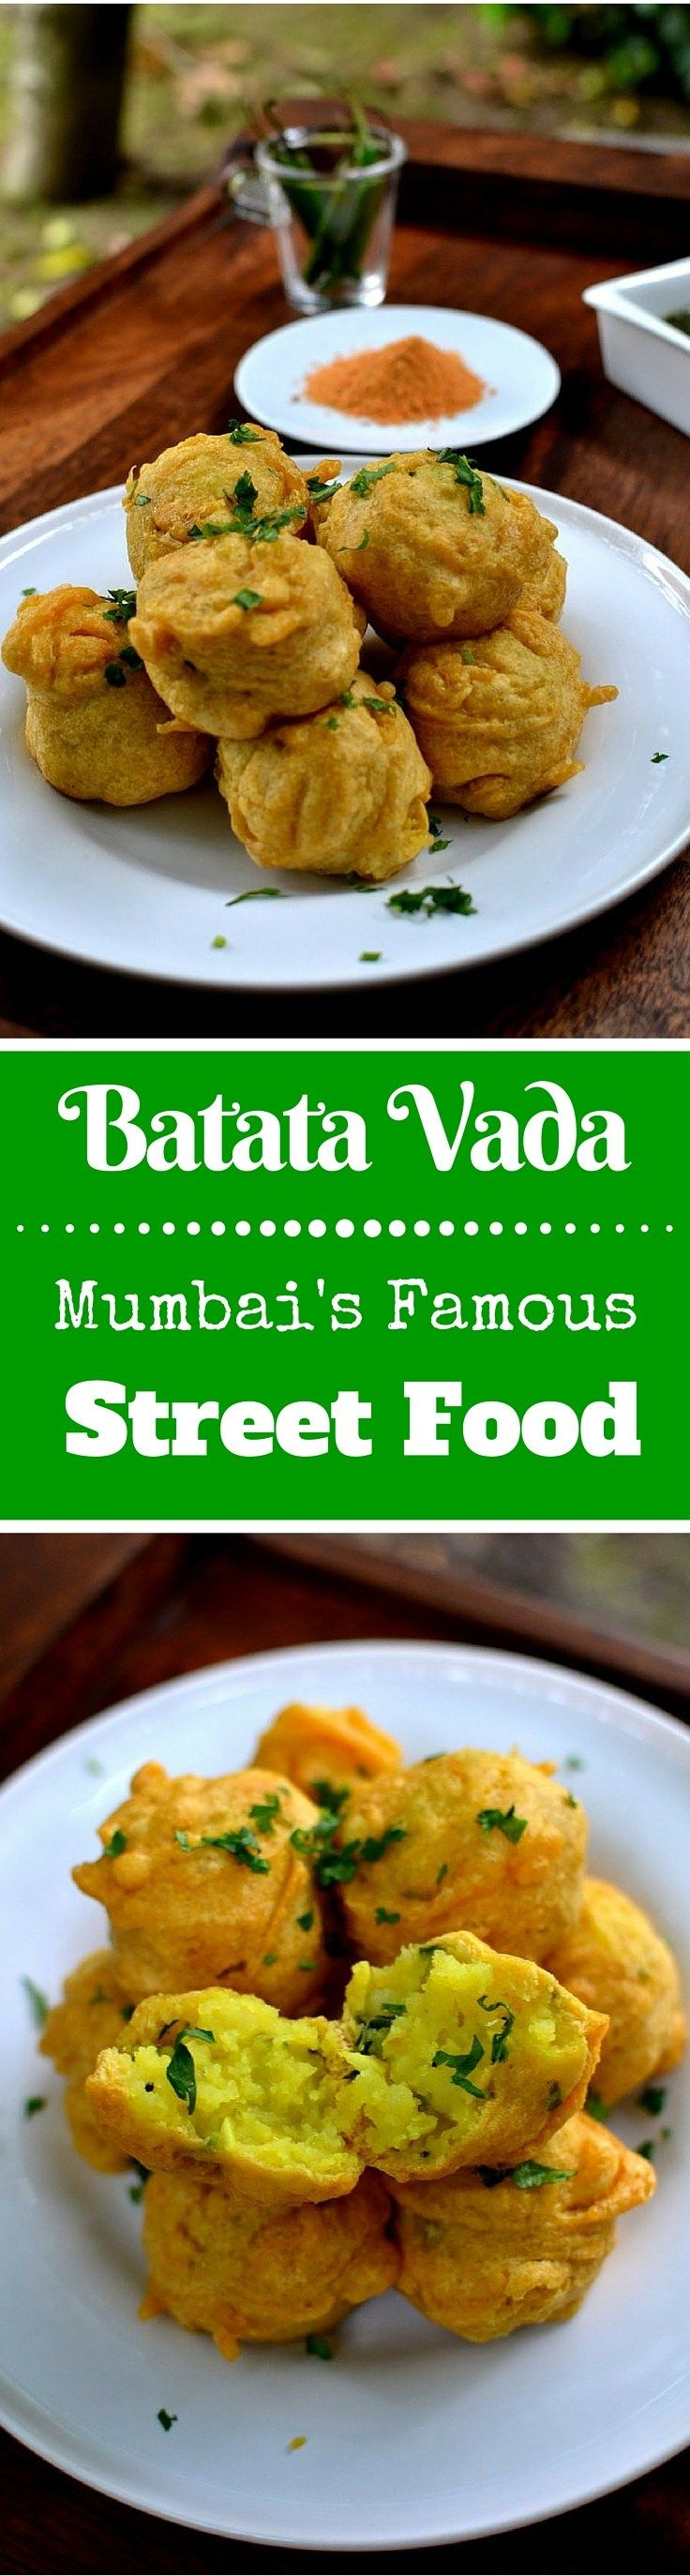 Mumbai-style Batata Vada | Spice in the City: This Iconic Potato Fritter from the Streets of Mumbai is one of the most scrumptious Street Food you will ever eat!